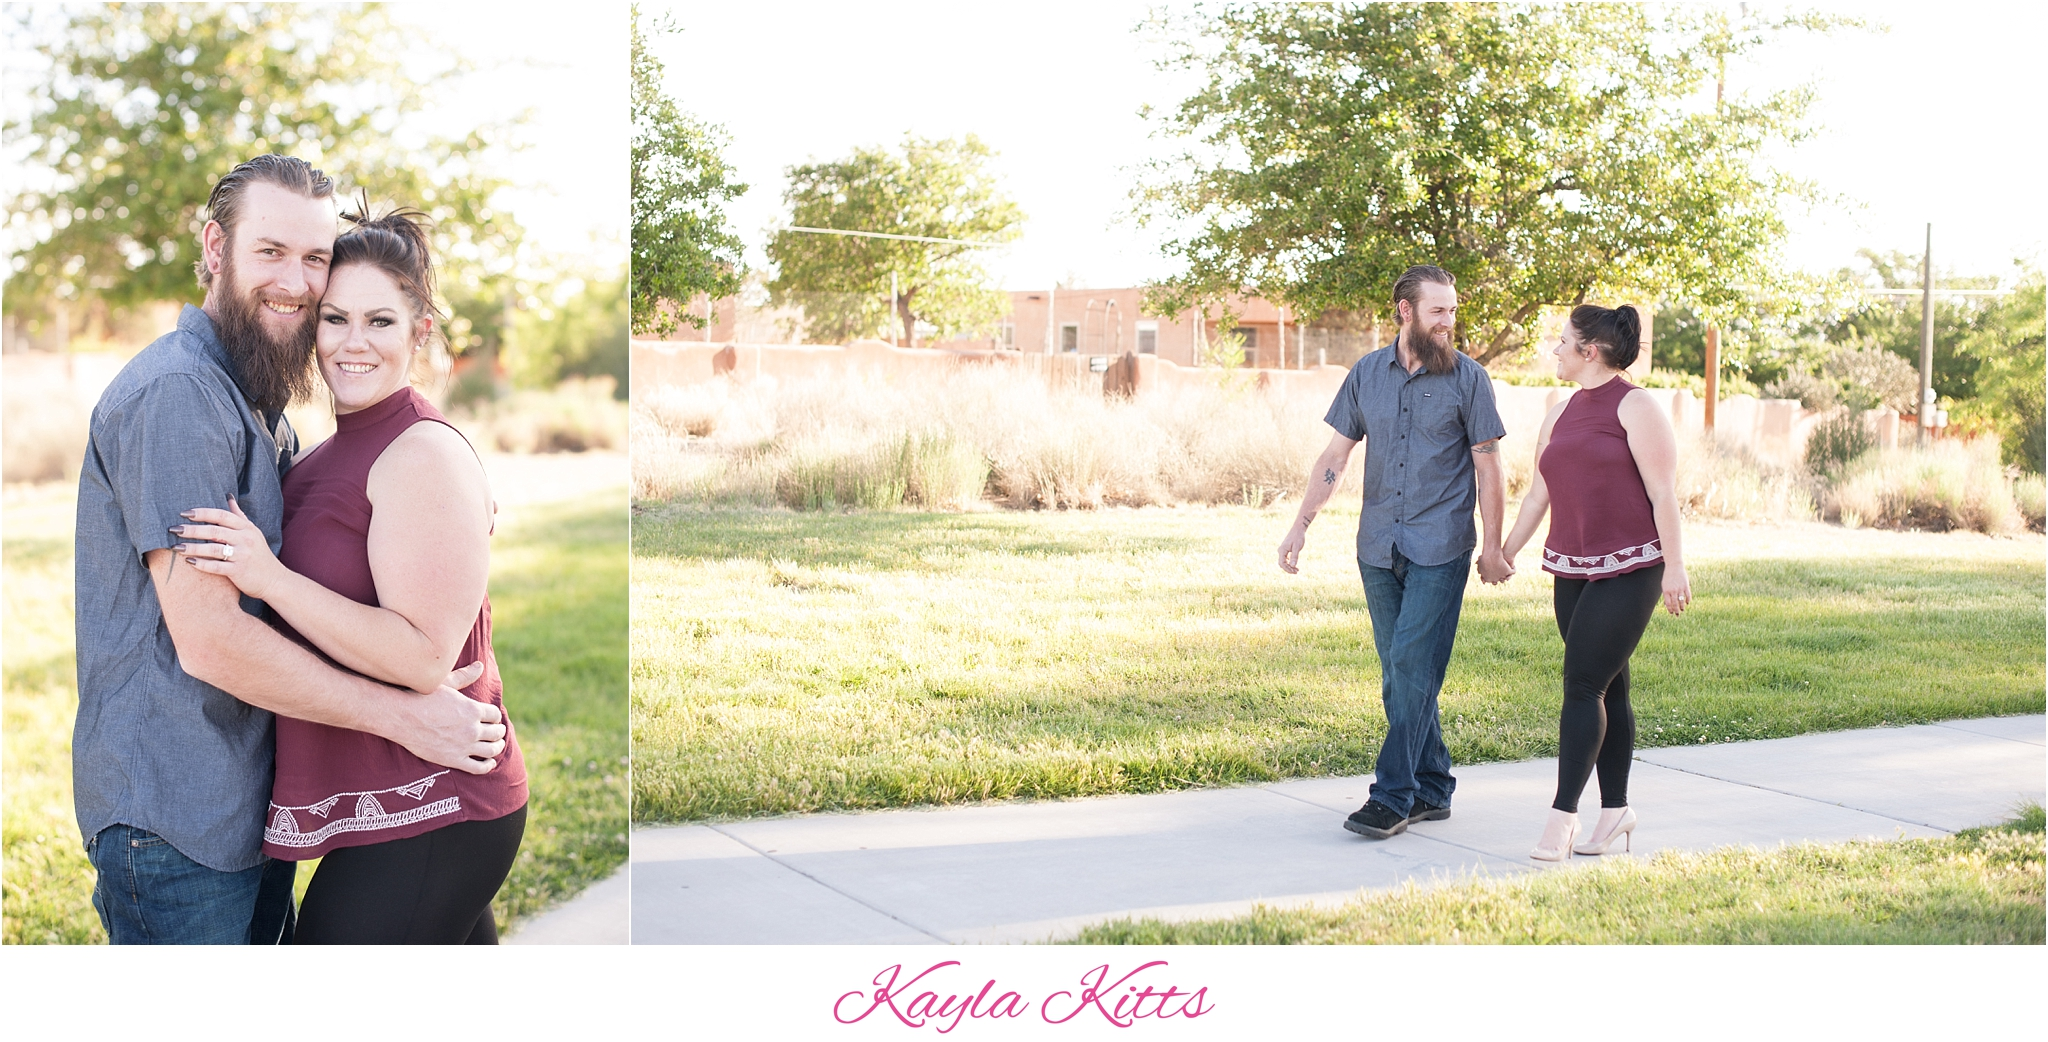 kayla kitts photography - albuquerque wedding photographer - albuquerque engagement photographer - nm wedding - albuquerque wedding - nm wedding - unm engagement - bosque engagement session_0009.jpg